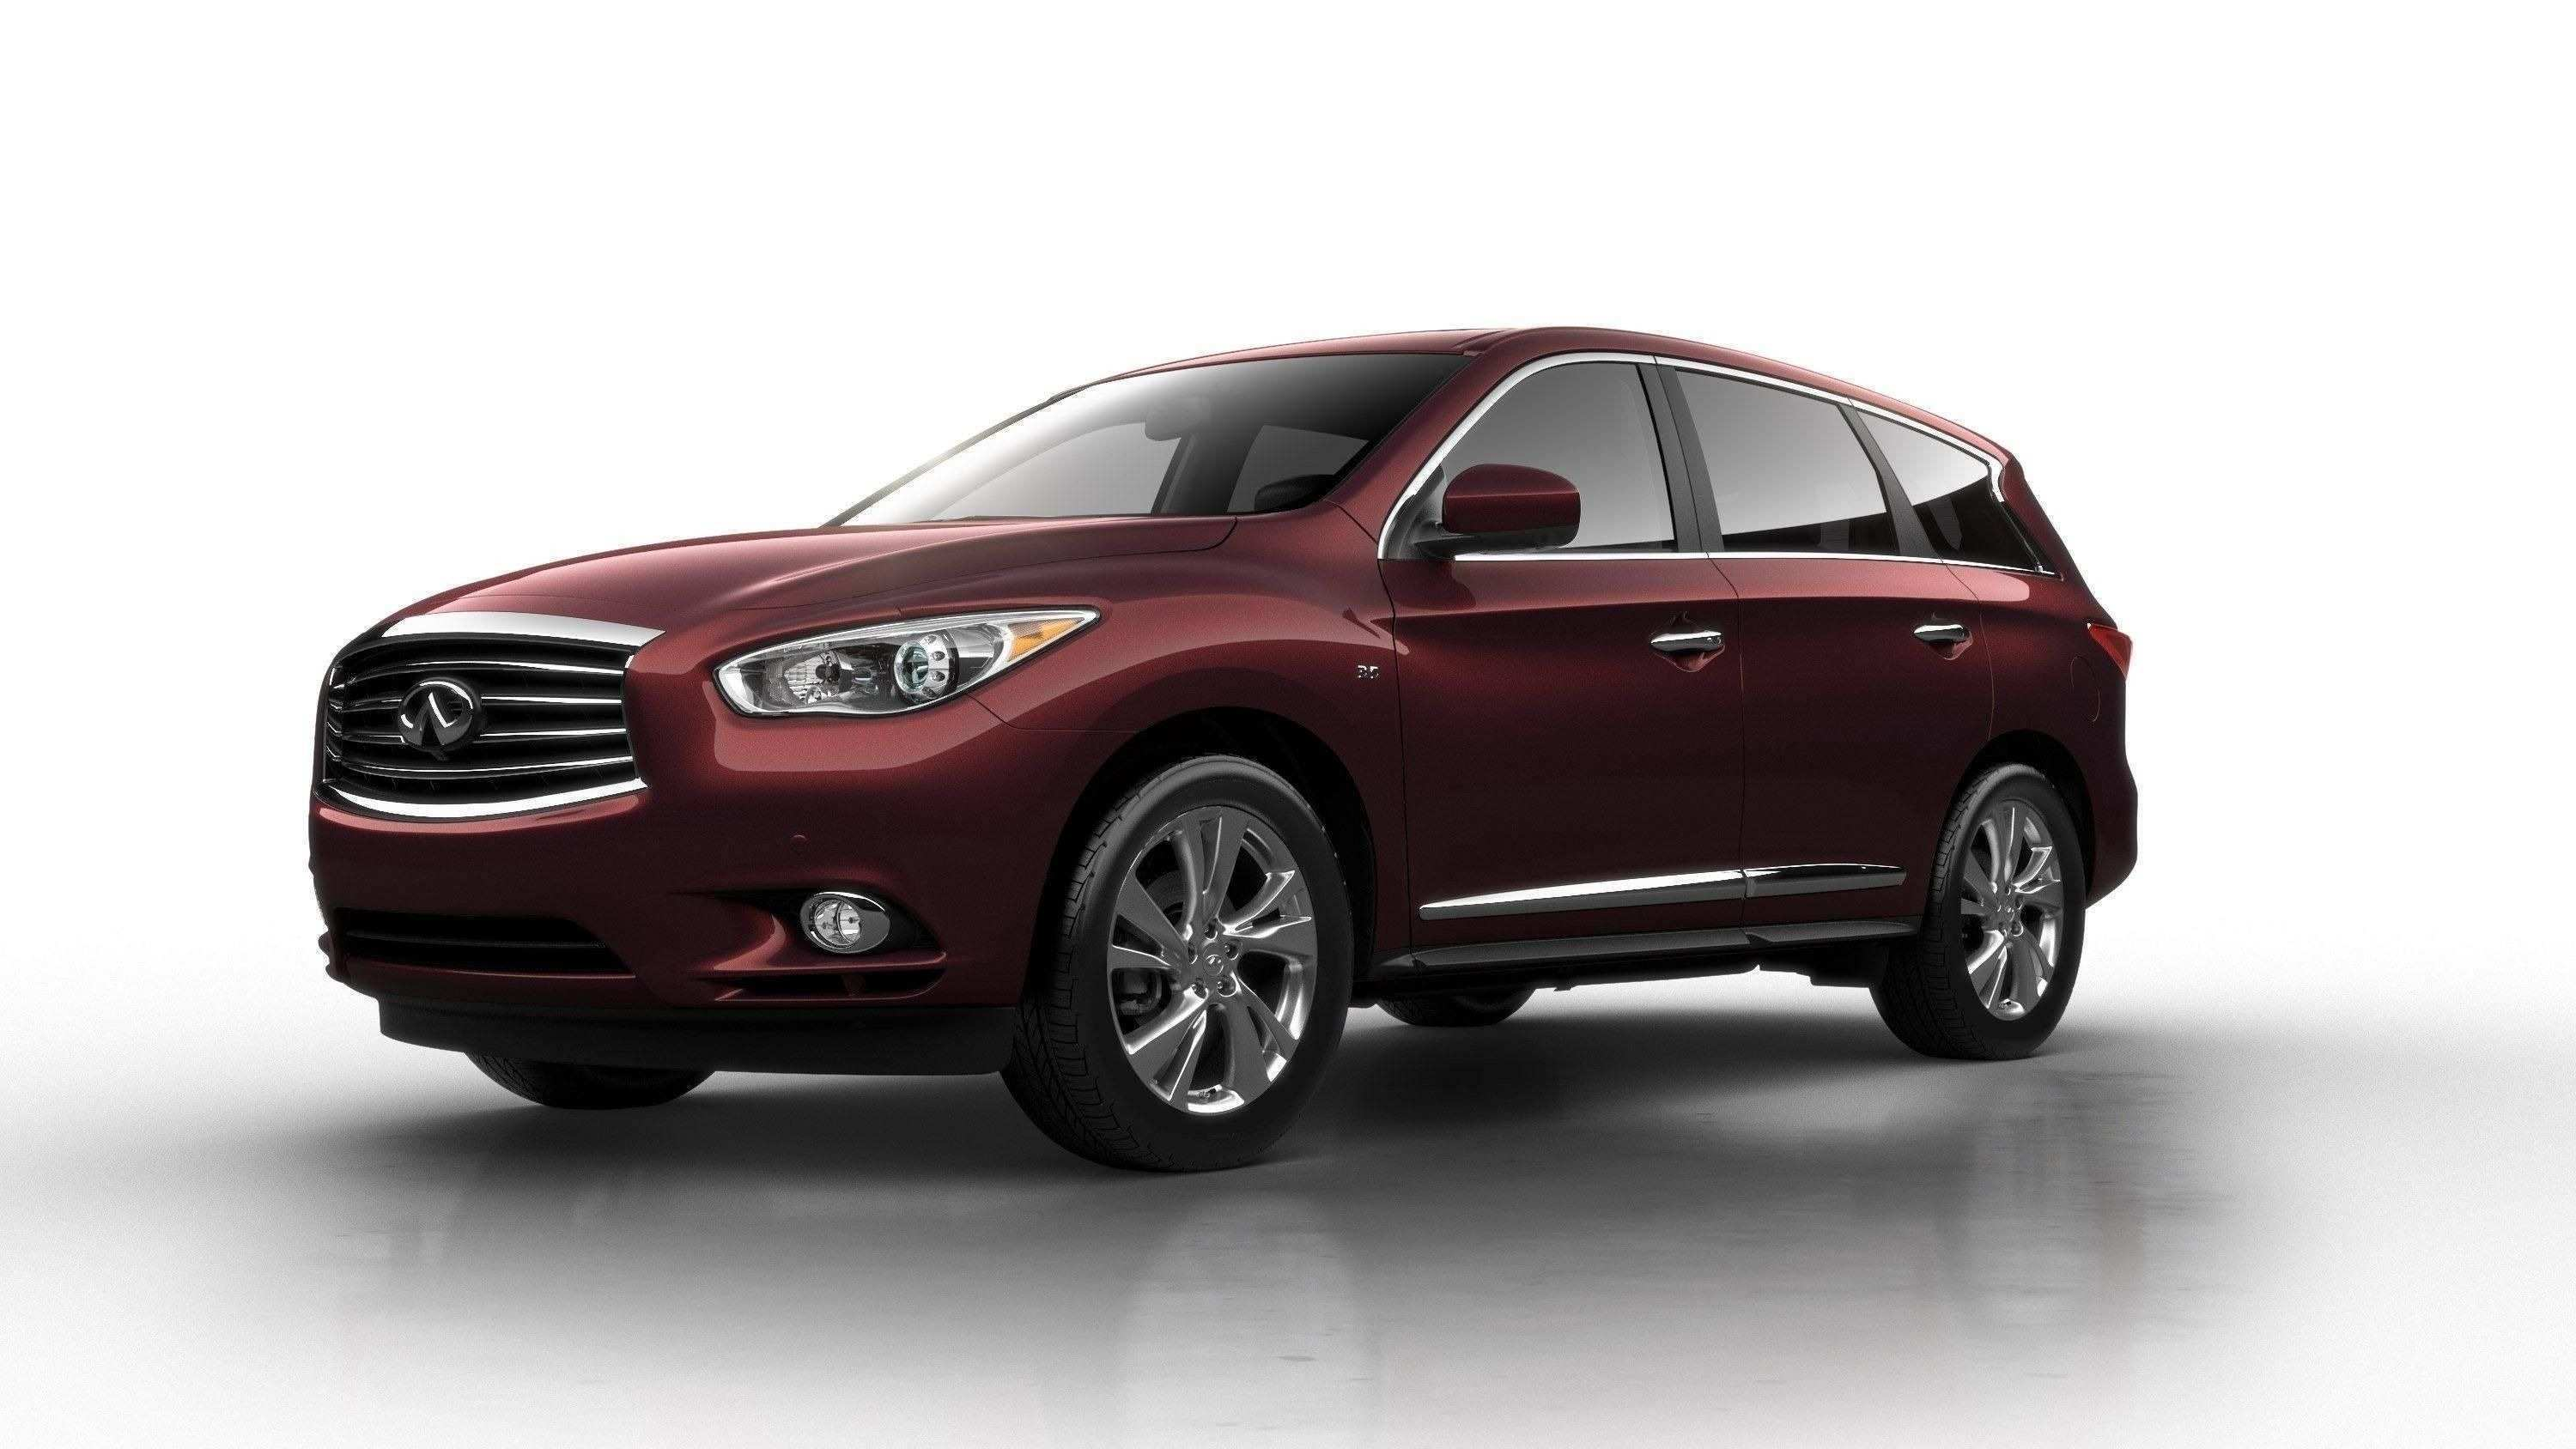 73 Great The Infiniti 2019 Qx60 Release Date Review Exterior with The Infiniti 2019 Qx60 Release Date Review